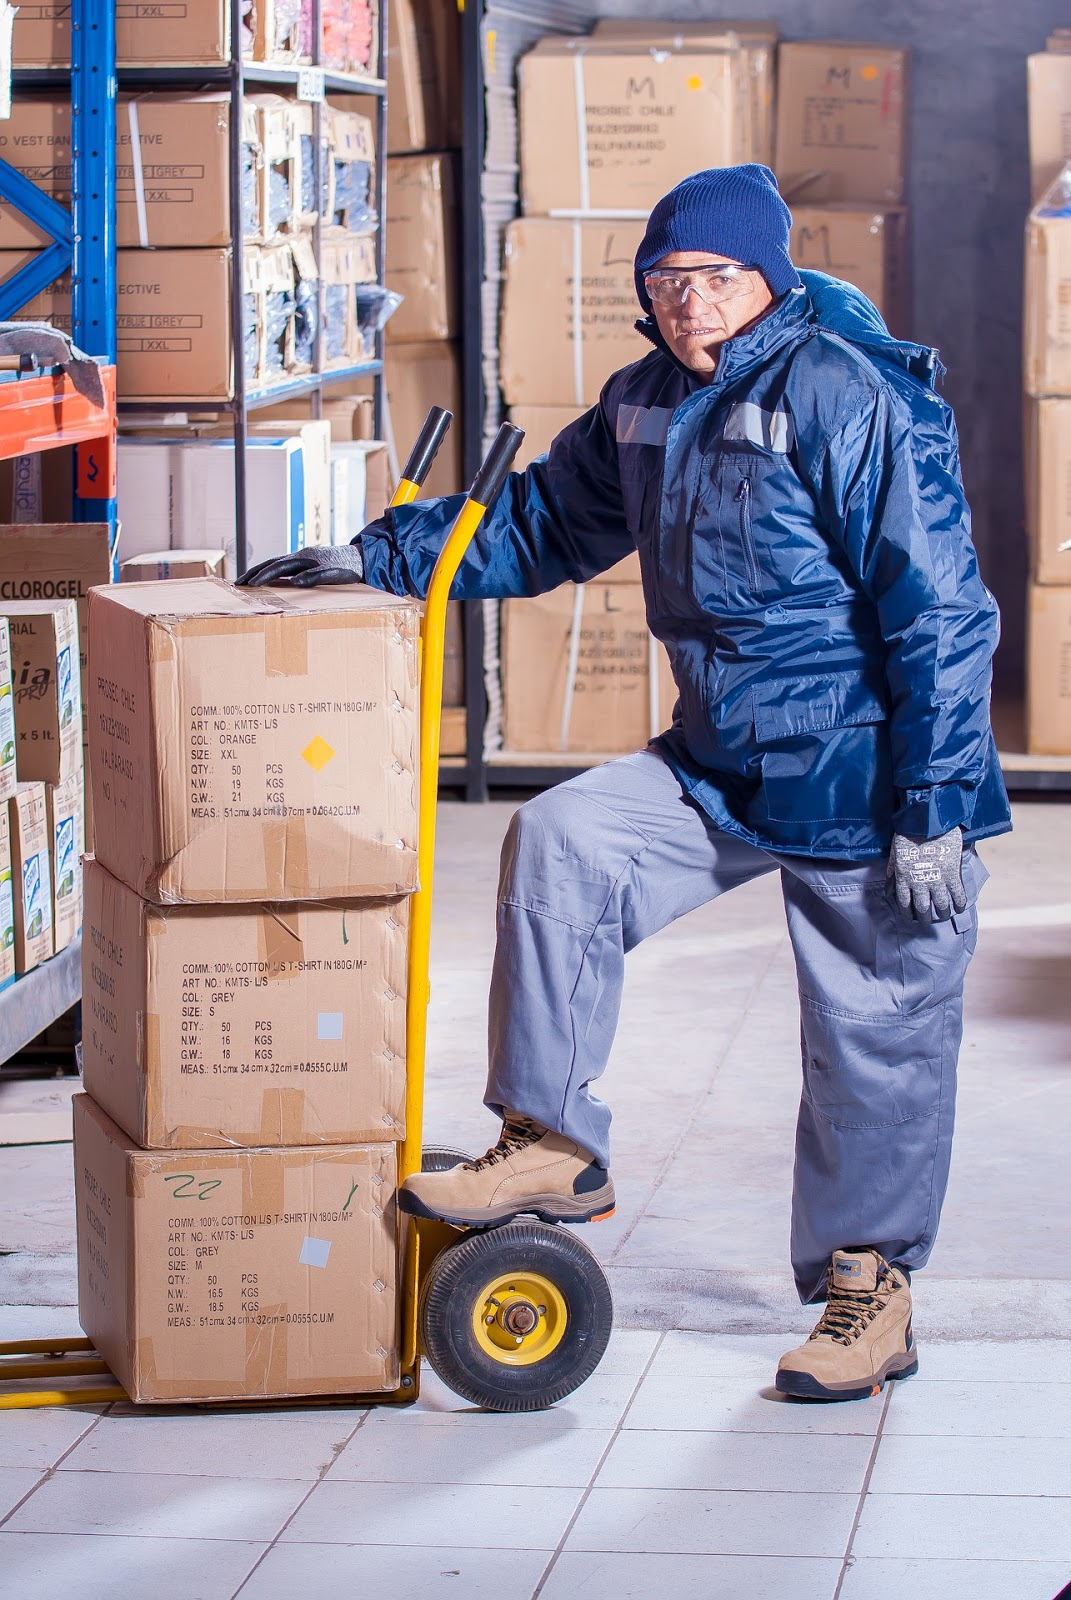 3PL providers can handle the warehousing and packaging of shipments.